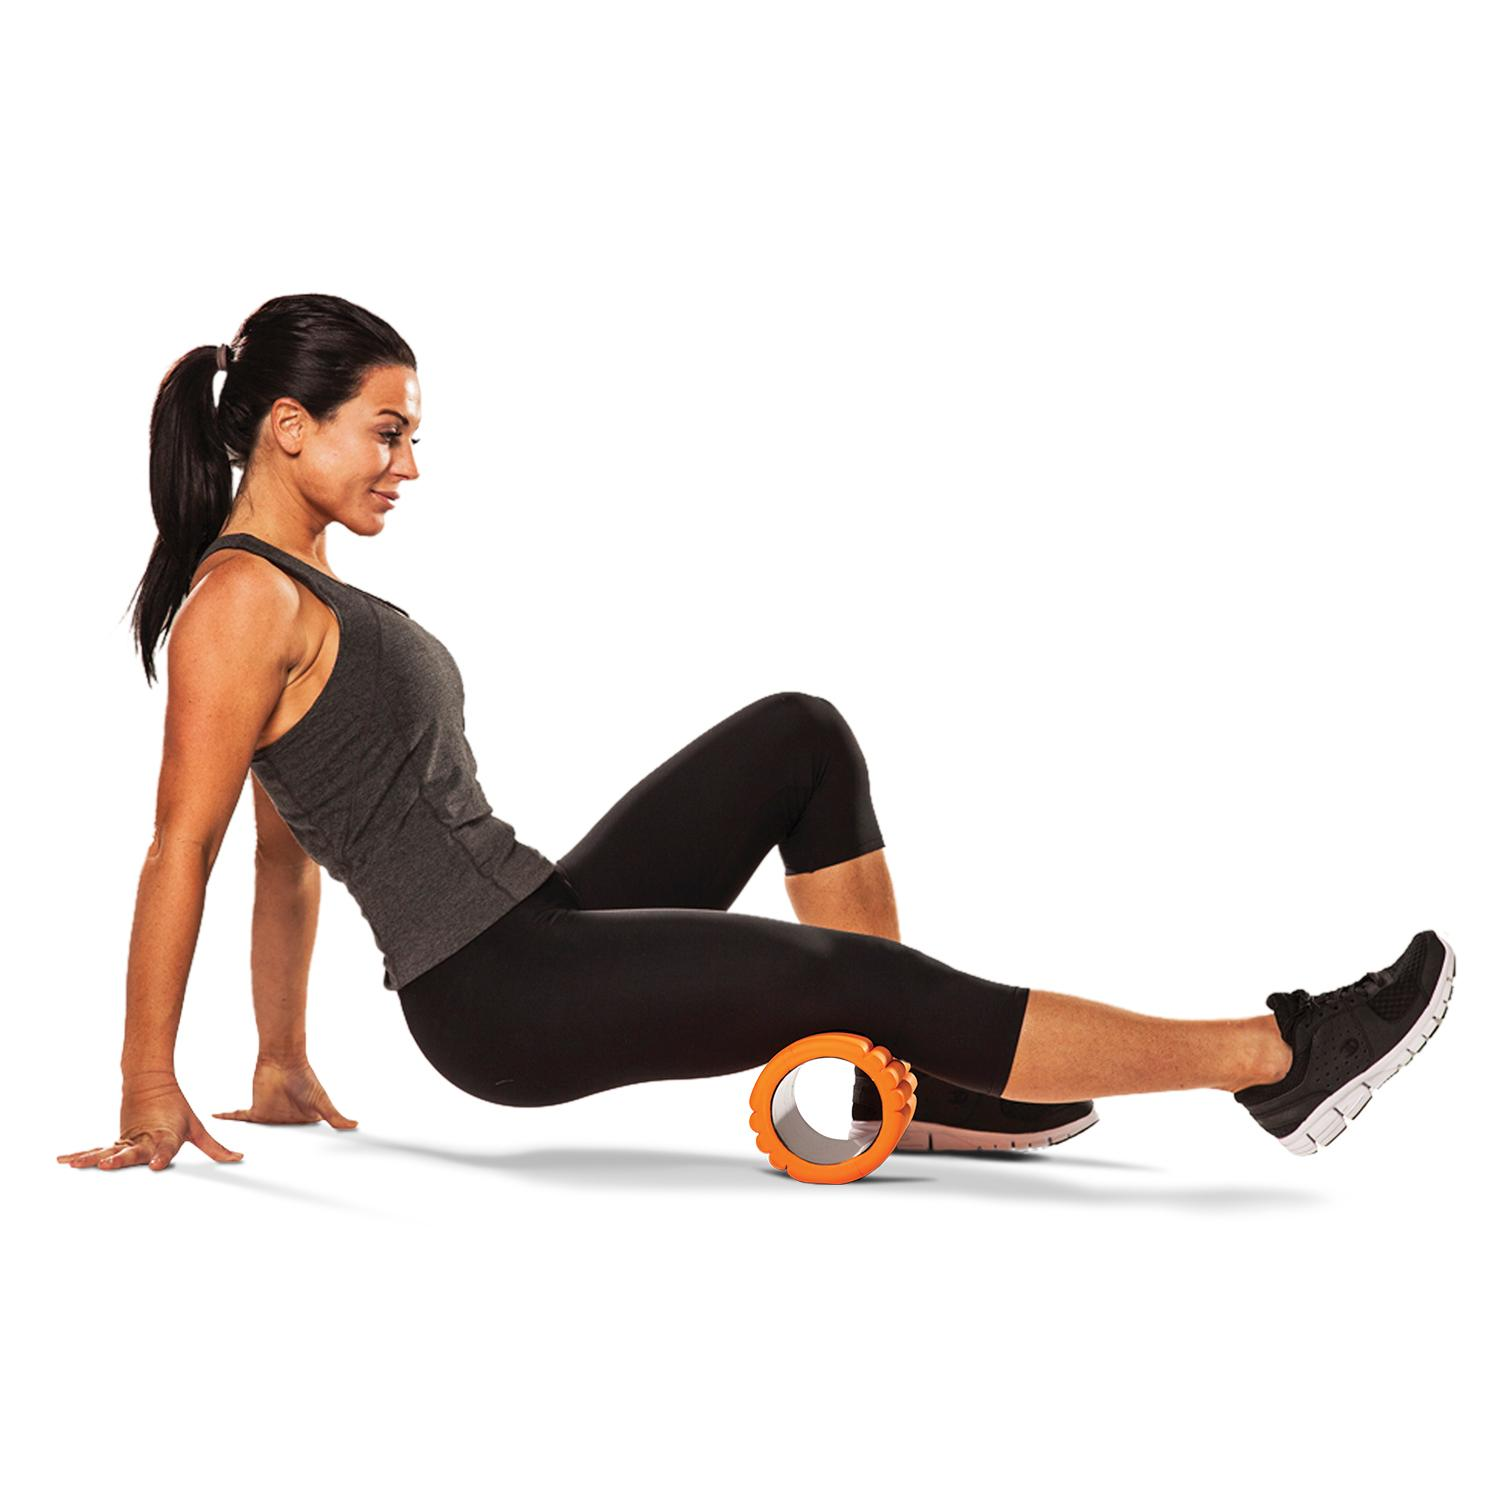 Amazon.com: TriggerPoint GRID Foam Roller with Free Online ...